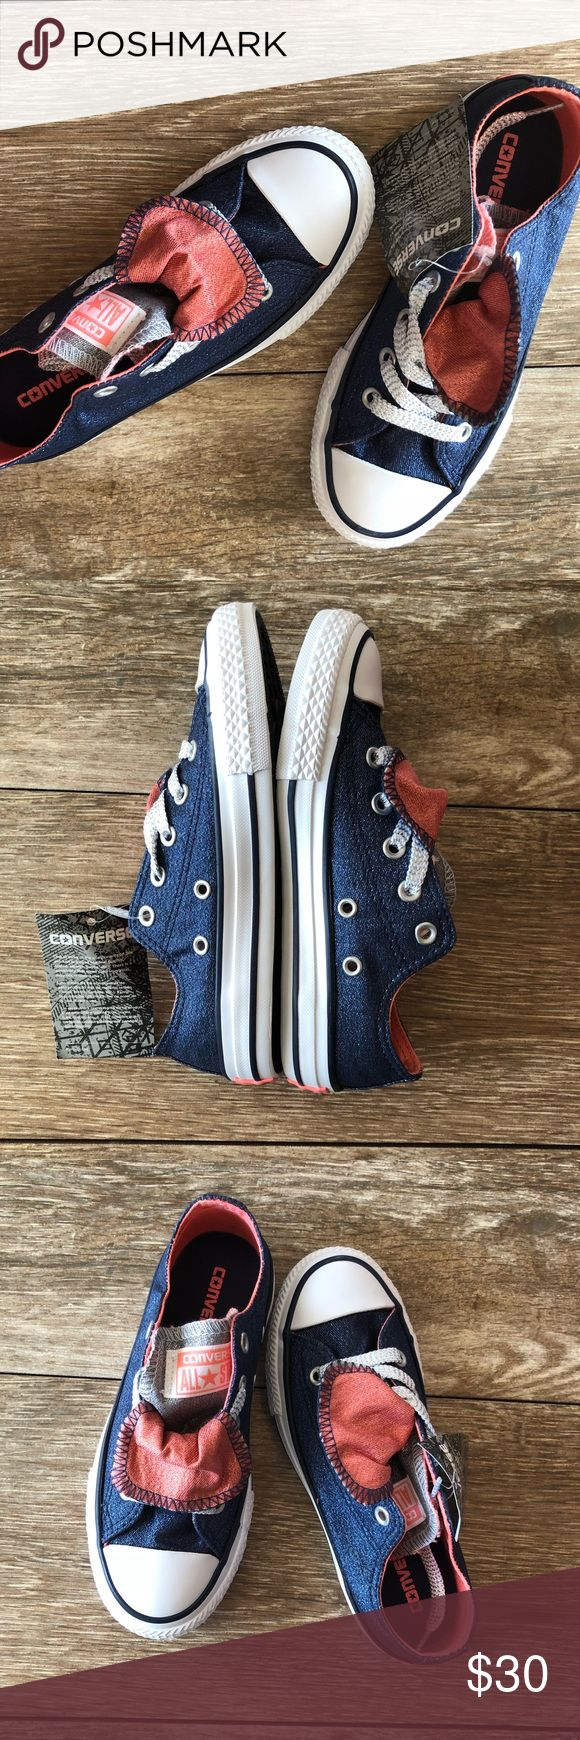 NIB Converse Converse Double Tongue Sneaker NIB & w/tags Converse Chuck Taylor All Star Double Tongue Sneakers, Size 13. Color:Midnight Navy with Sunblush and white. Colors have a sparkle ✨or shimmer to them. Textile upper & lining & rubber outsole. Converse Shoes Sneakers